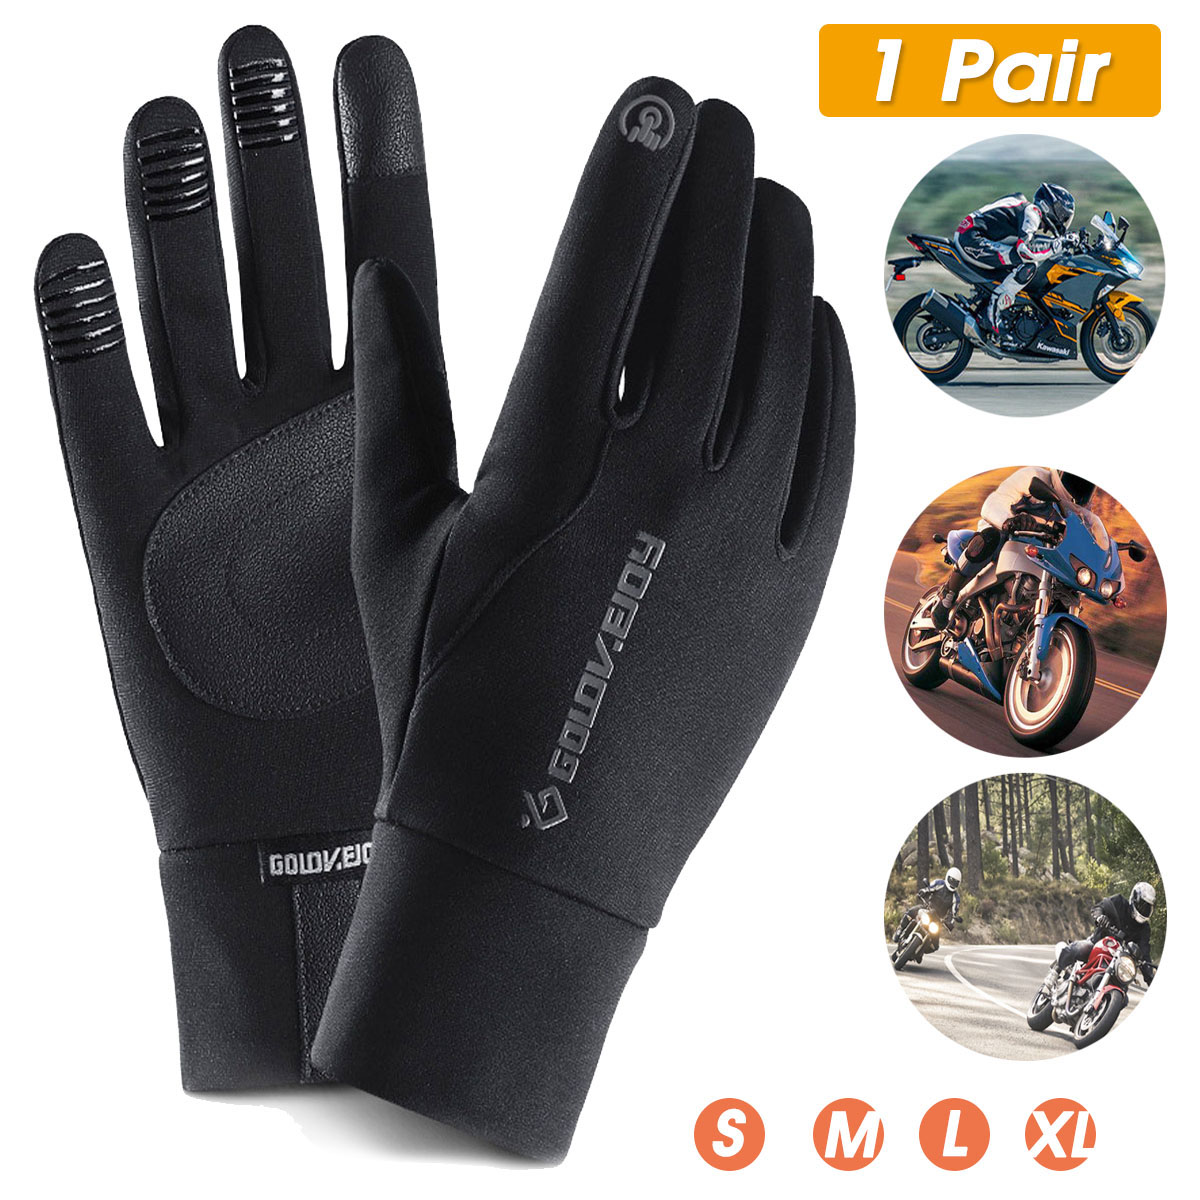 Touch Screen Gloves Motorcycle Scooter Waterproof Winter Bike Fleece Lined